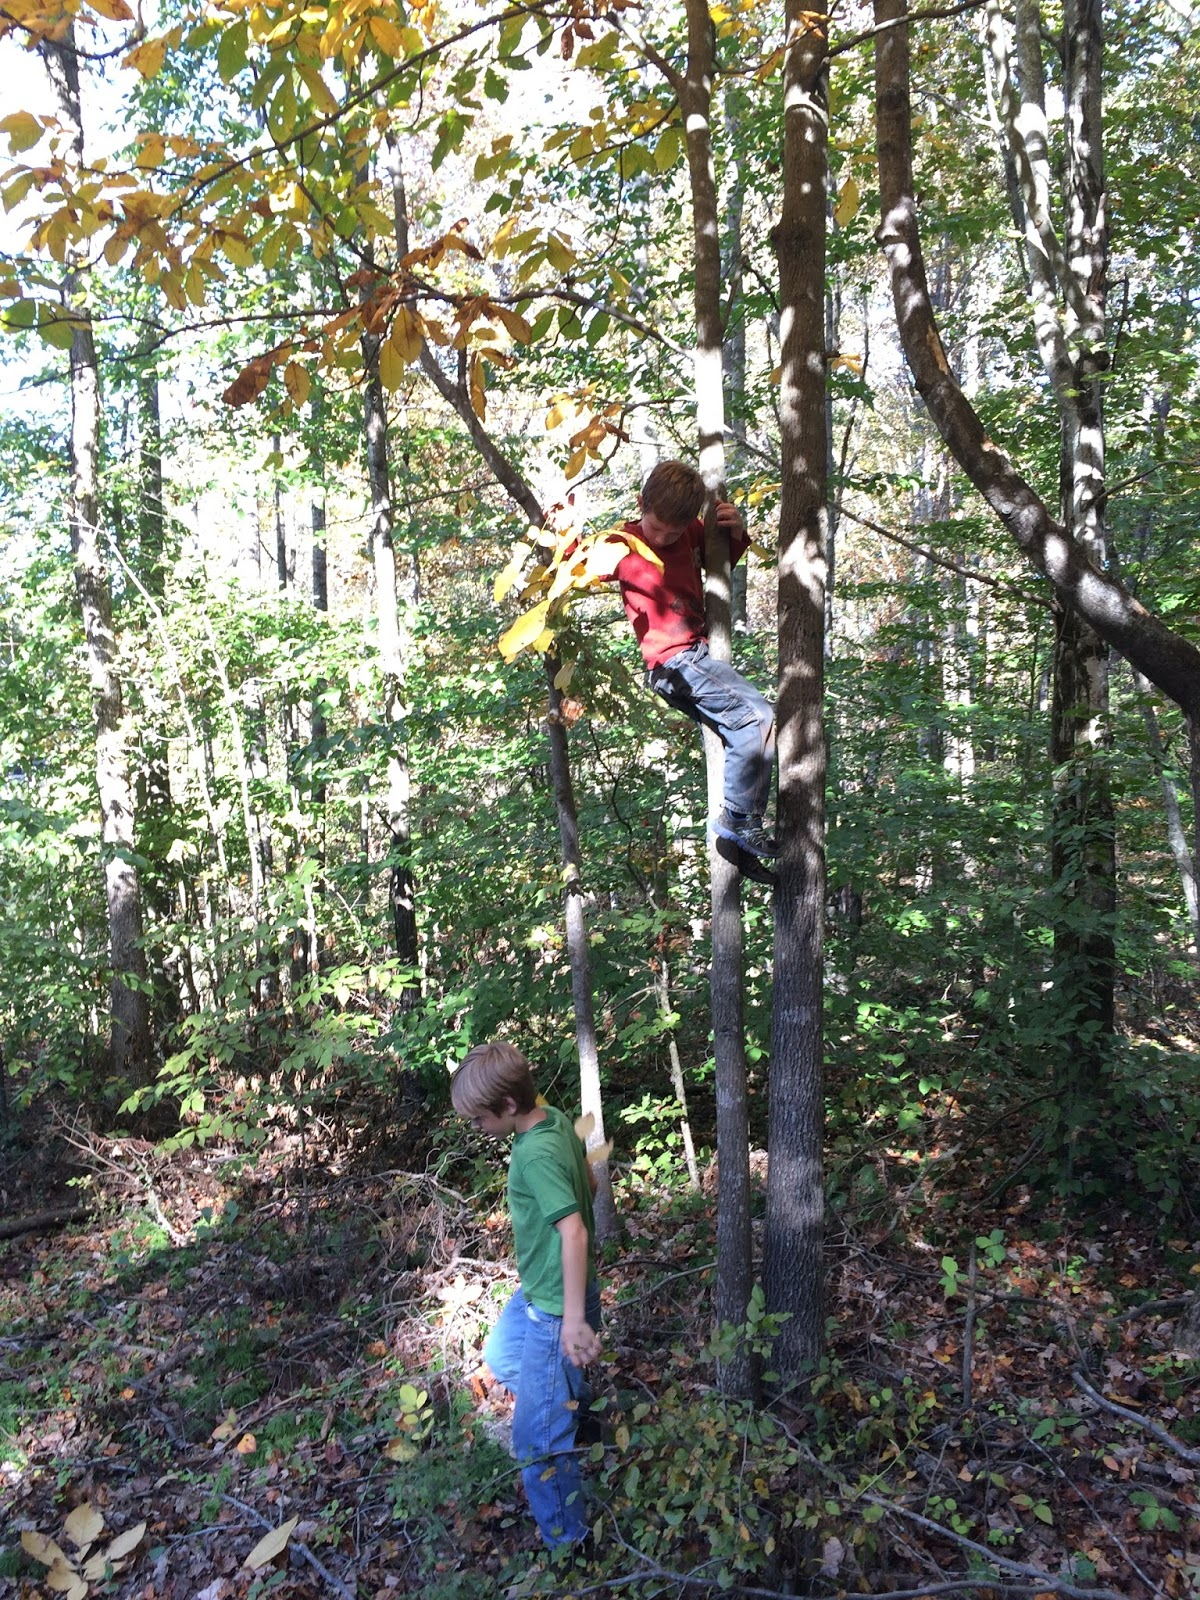 The johnson journals do it yourself homeschool journals review week 1 not to be outdone e climbed really high and stood on a branch shaking the entire tree making leaves rain down on all of us solutioingenieria Image collections